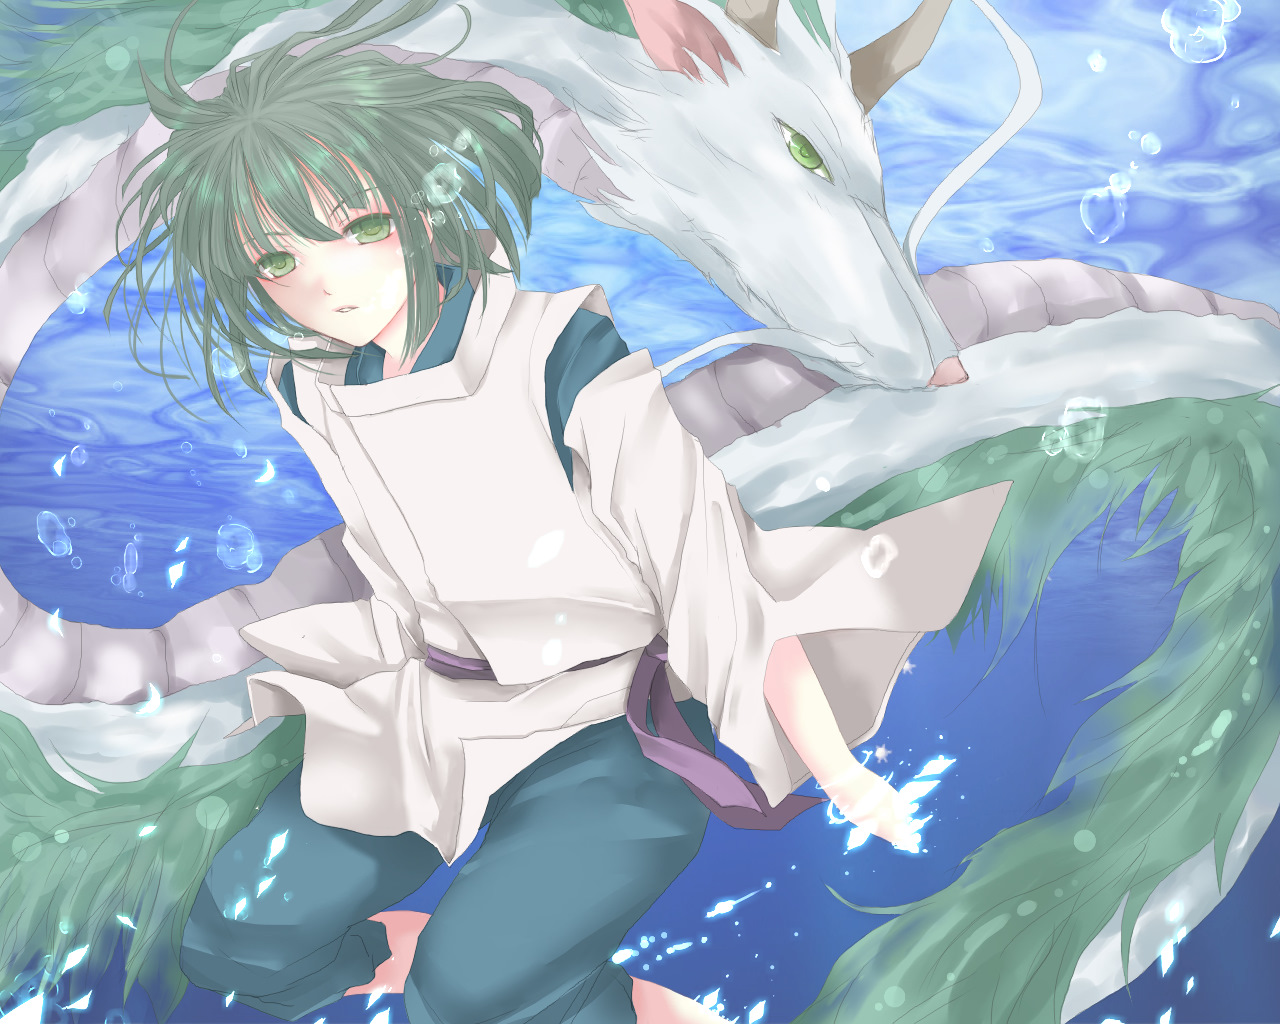 Haku Sen To Chihiro No Kamikakushi Spirit Of The Kohaku River Zerochan Anime Image Board